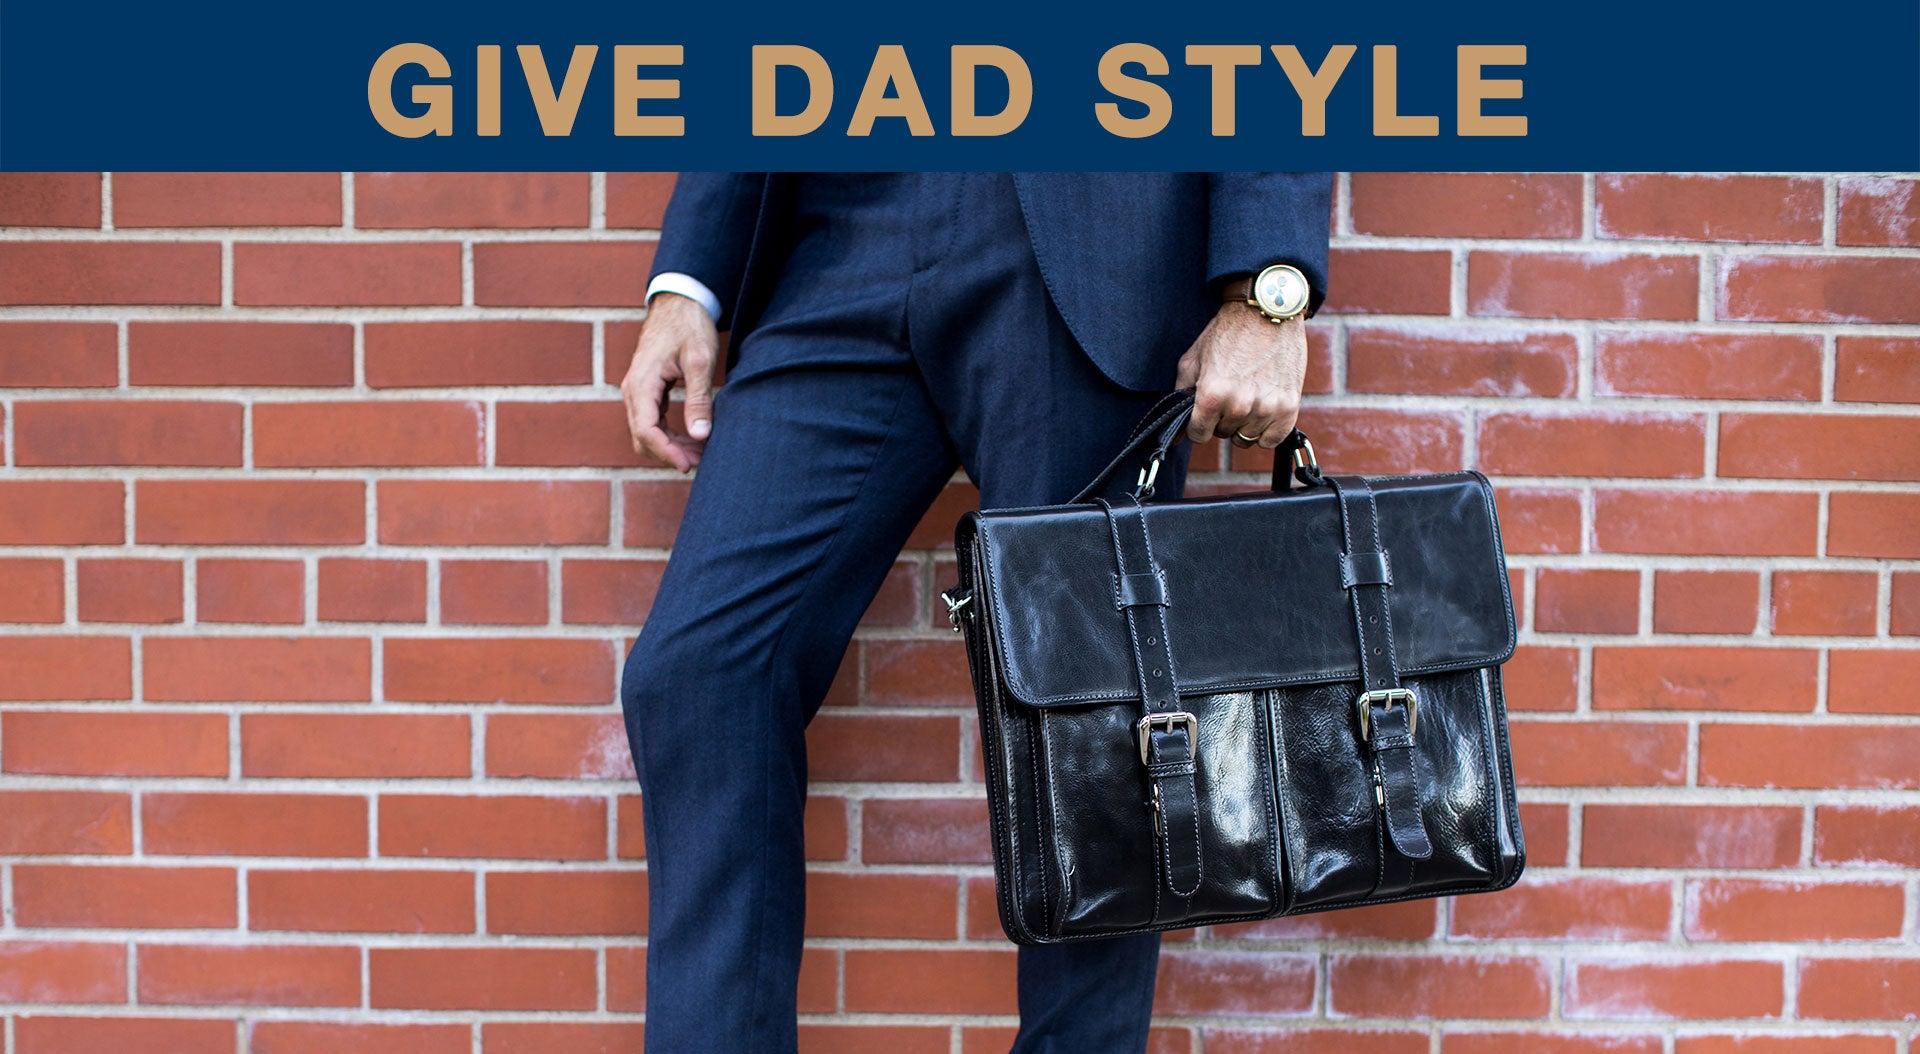 Floto leather bags Father's Day gift ideas